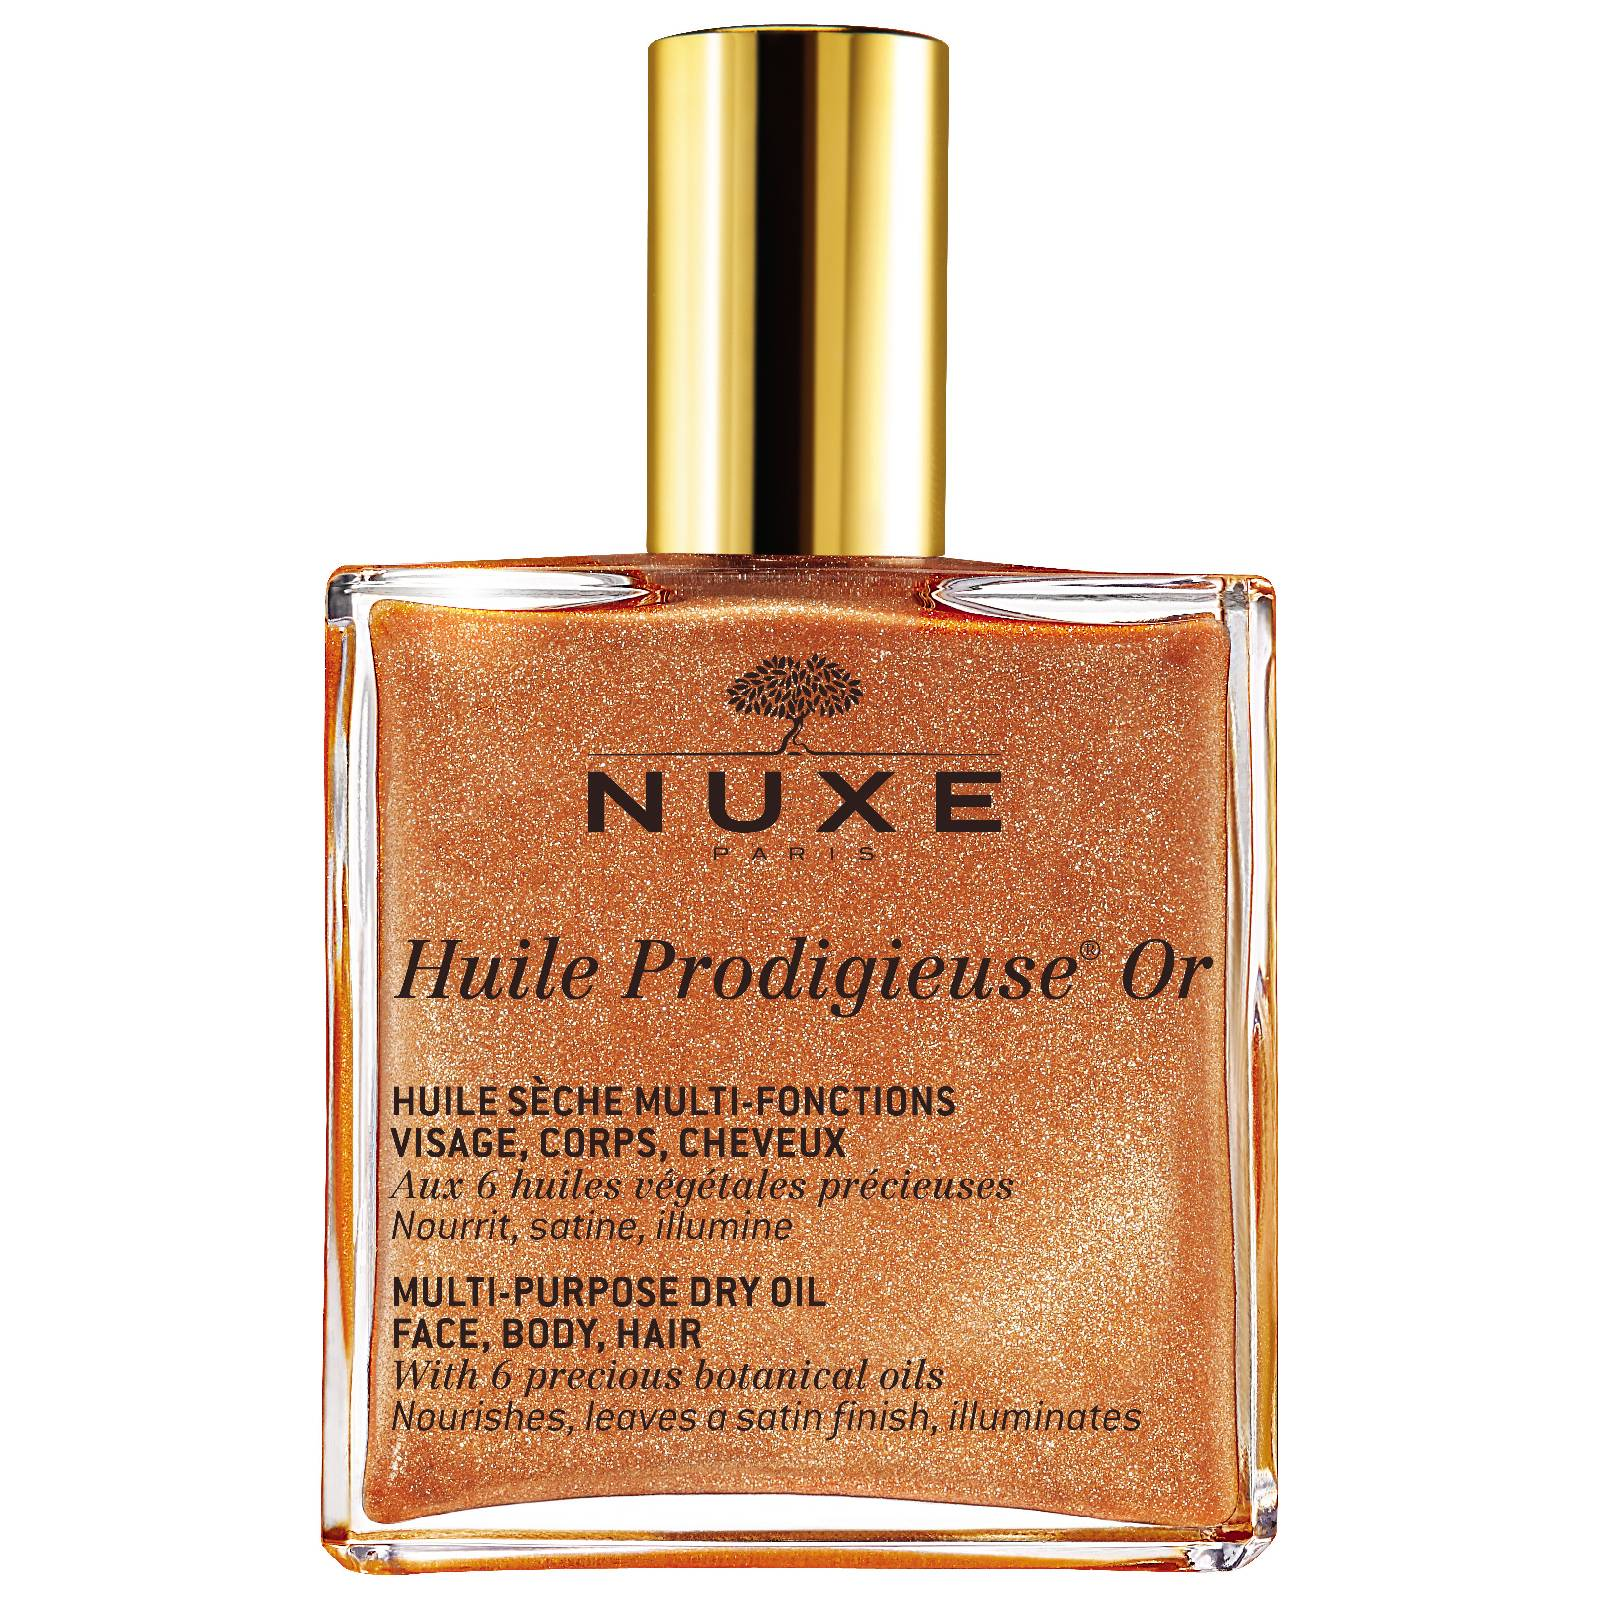 NUXE Huile sèche multi-fonctions Huile Prodigieuse® Or NUXE 100ml